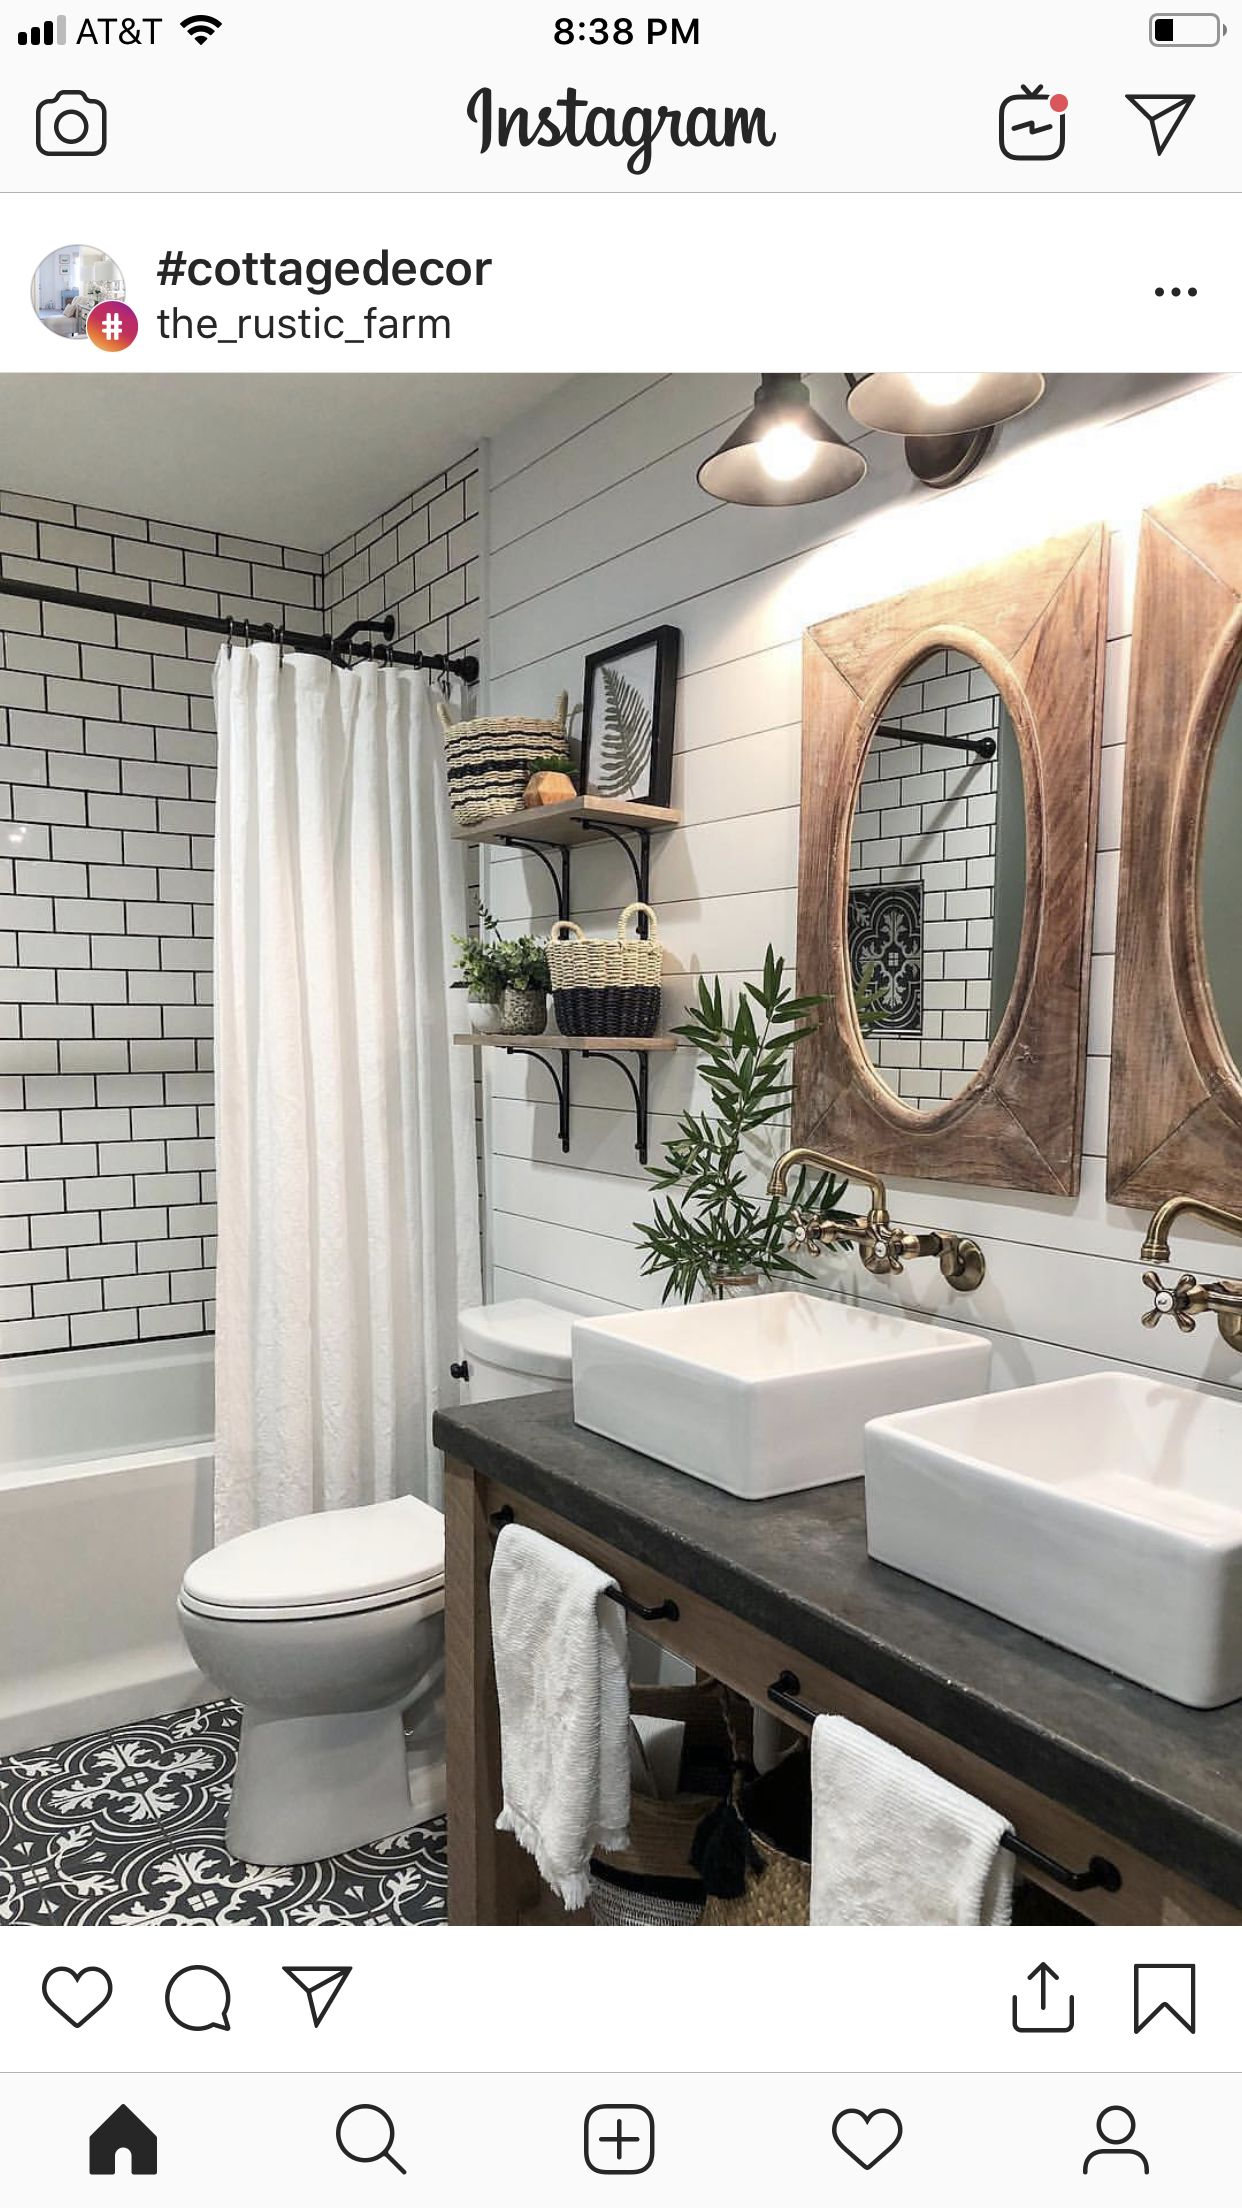 Cream Shiplap Walls White Subway Tile With Dark Grout As Tub Walls Faucet Sticking Out Of Wall Tiny Bathrooms Bathrooms Remodel Small Farmhouse Bathroom